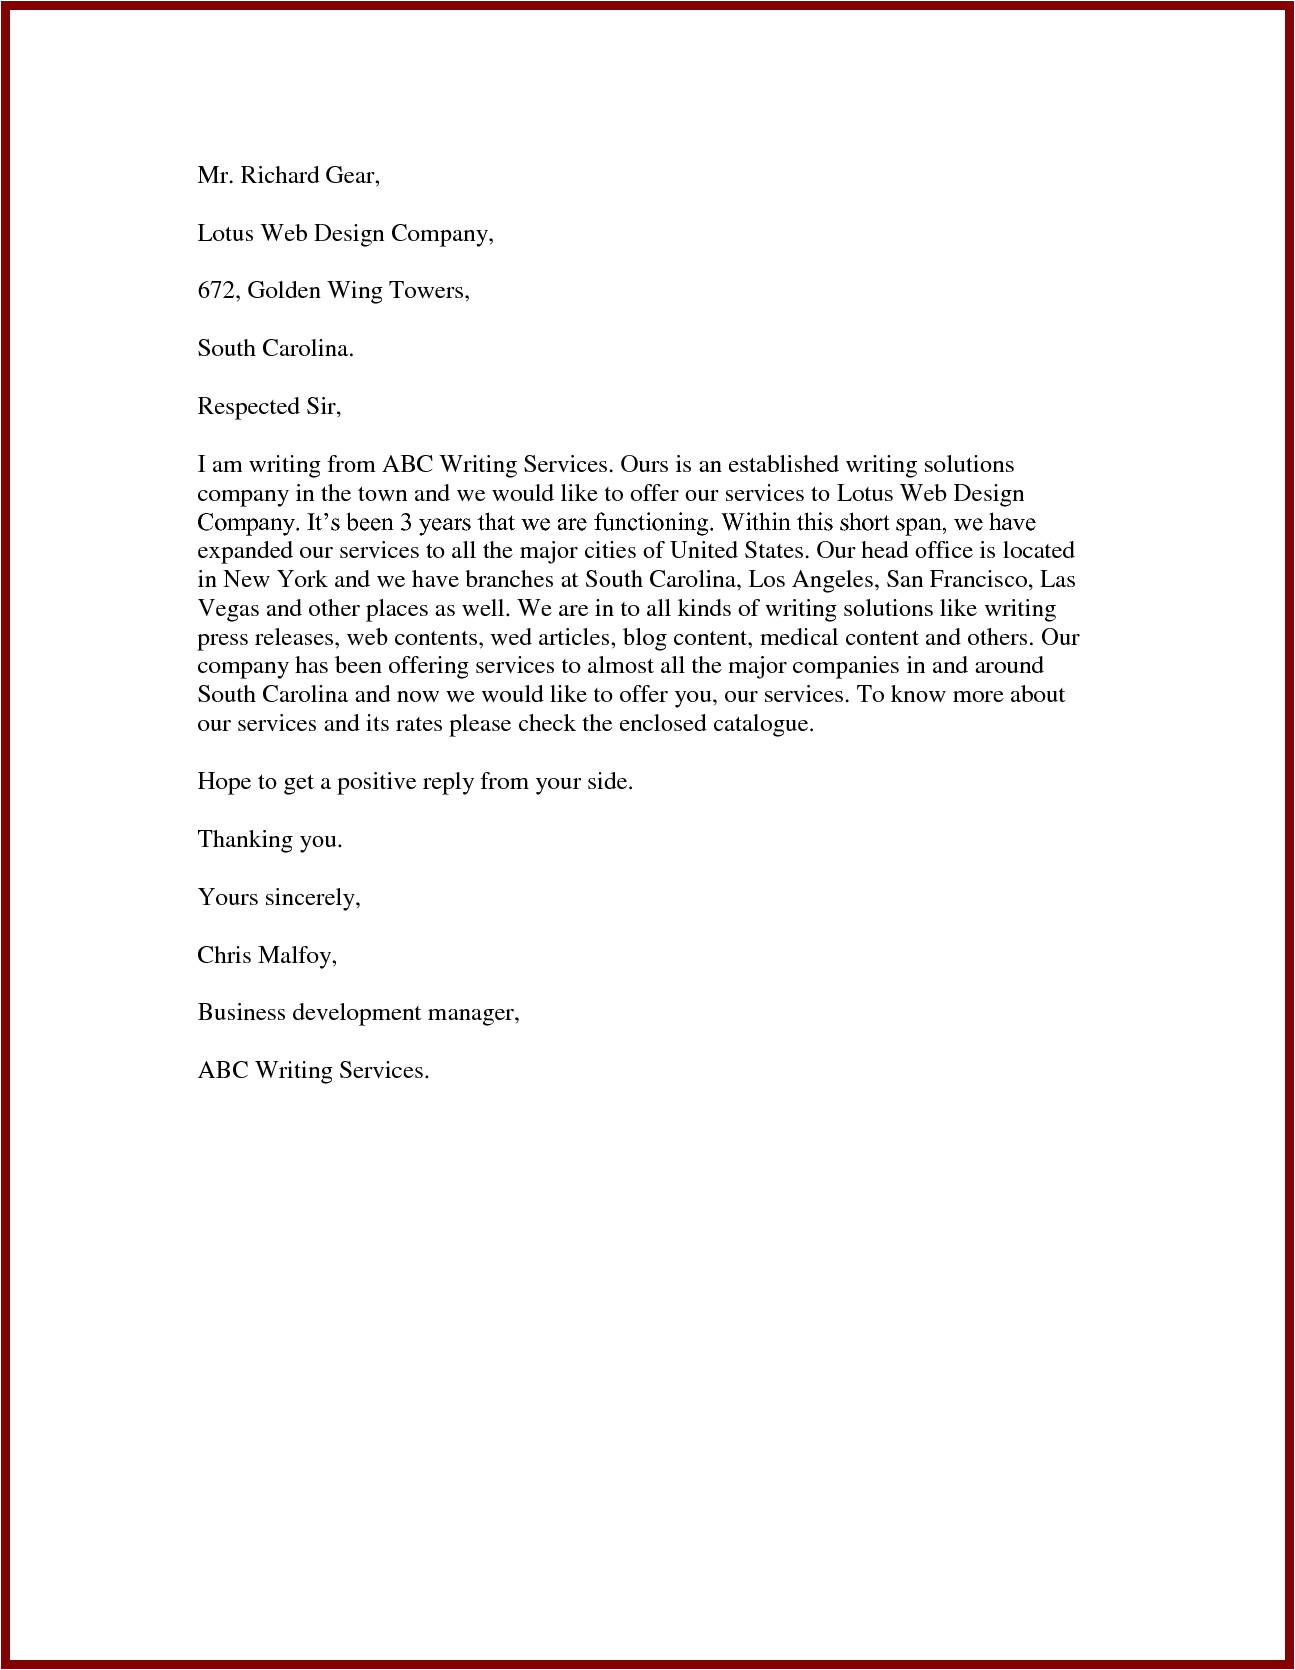 Email Offering Services Template Proposal Letter to Offer Services Scrumps